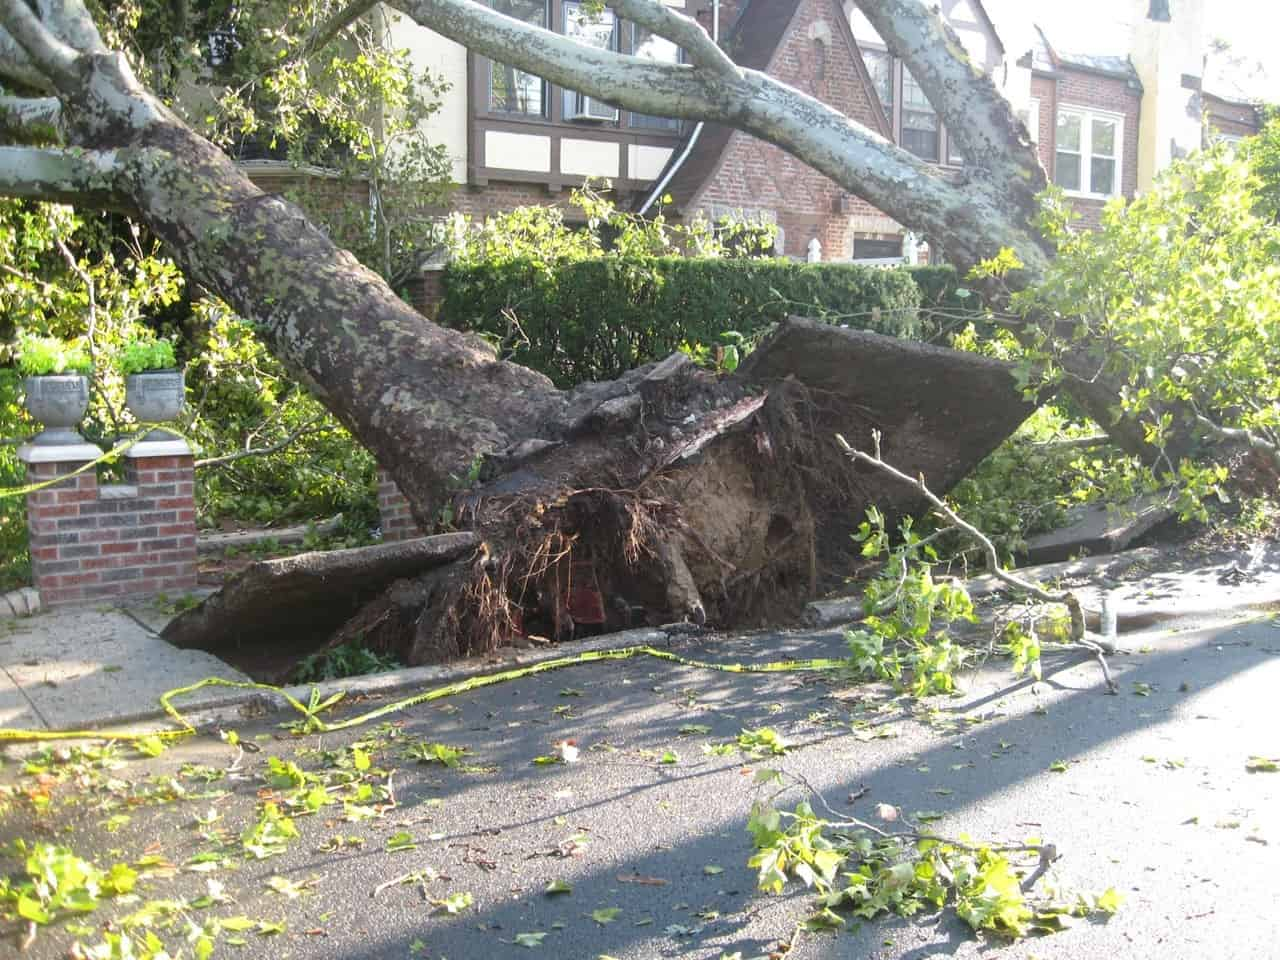 large trees on sidewalk completely uprooted by strong winds